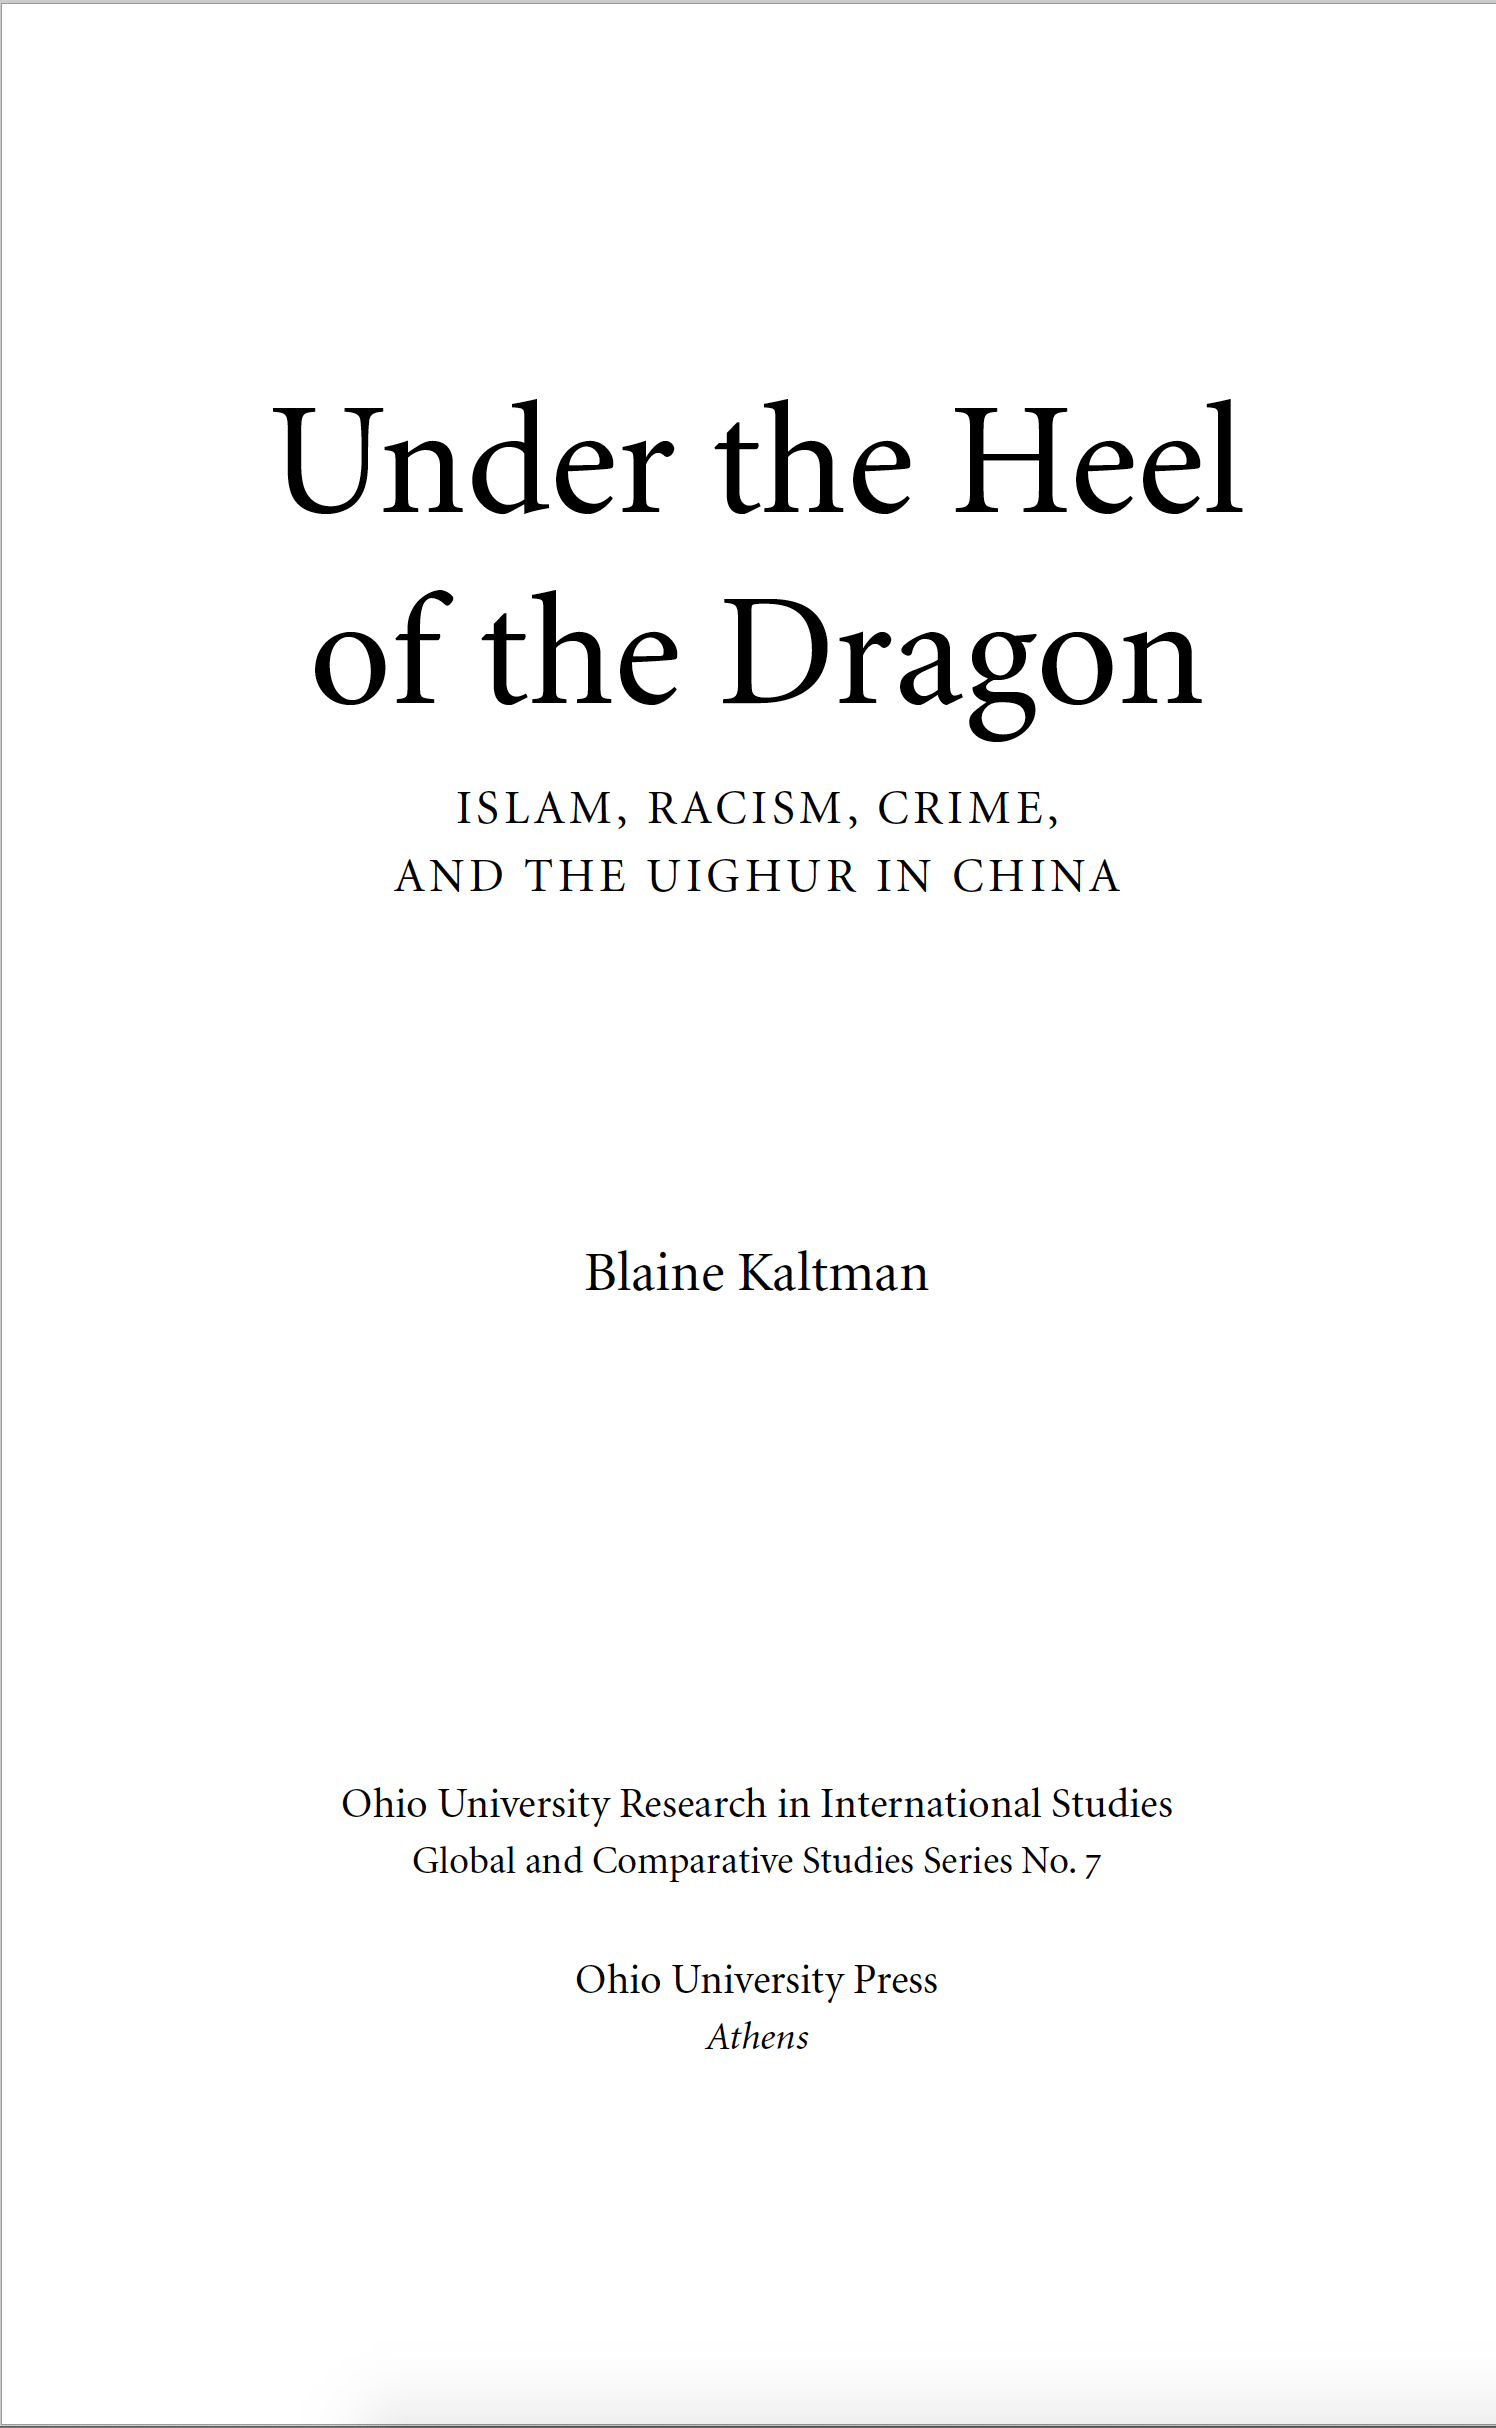 Screenshot 2020 02 01 at 14.56.41 - Under the Heel of the Dragon: Islam, Racism, Crime, and the Uighur in China